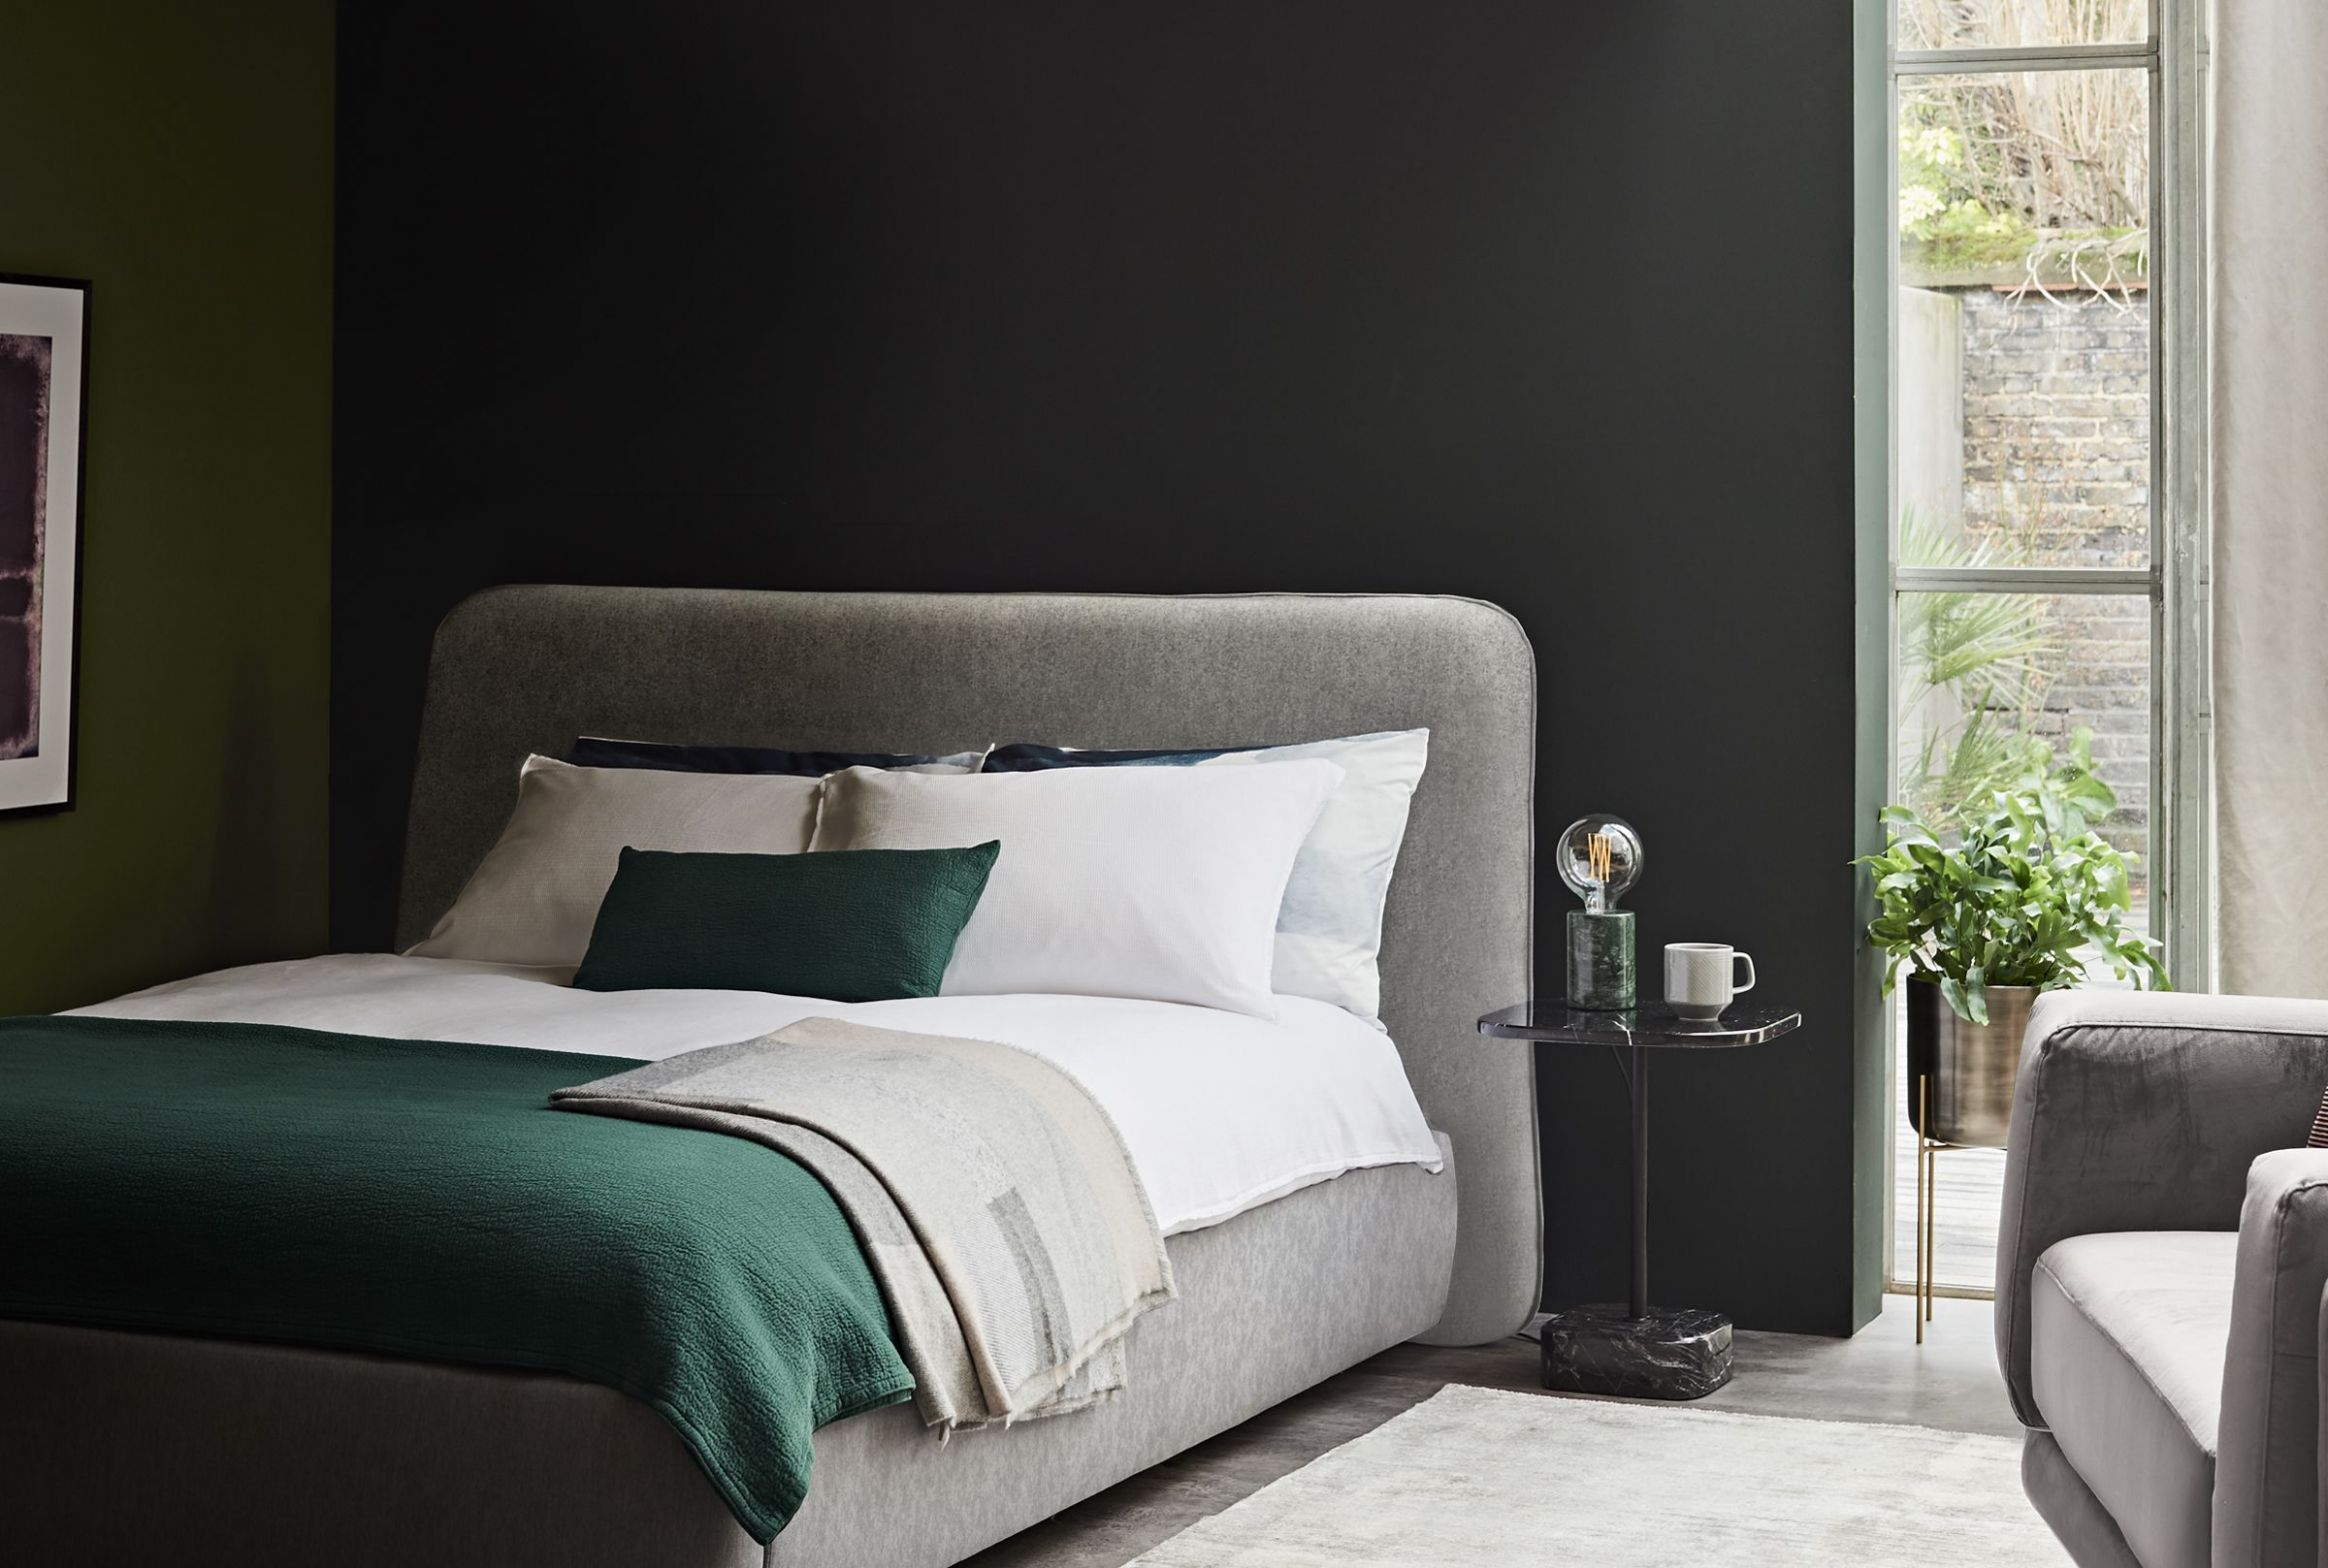 How to style the John Lewis interior design trends for A/W 11 - bedroom ideas john lewis